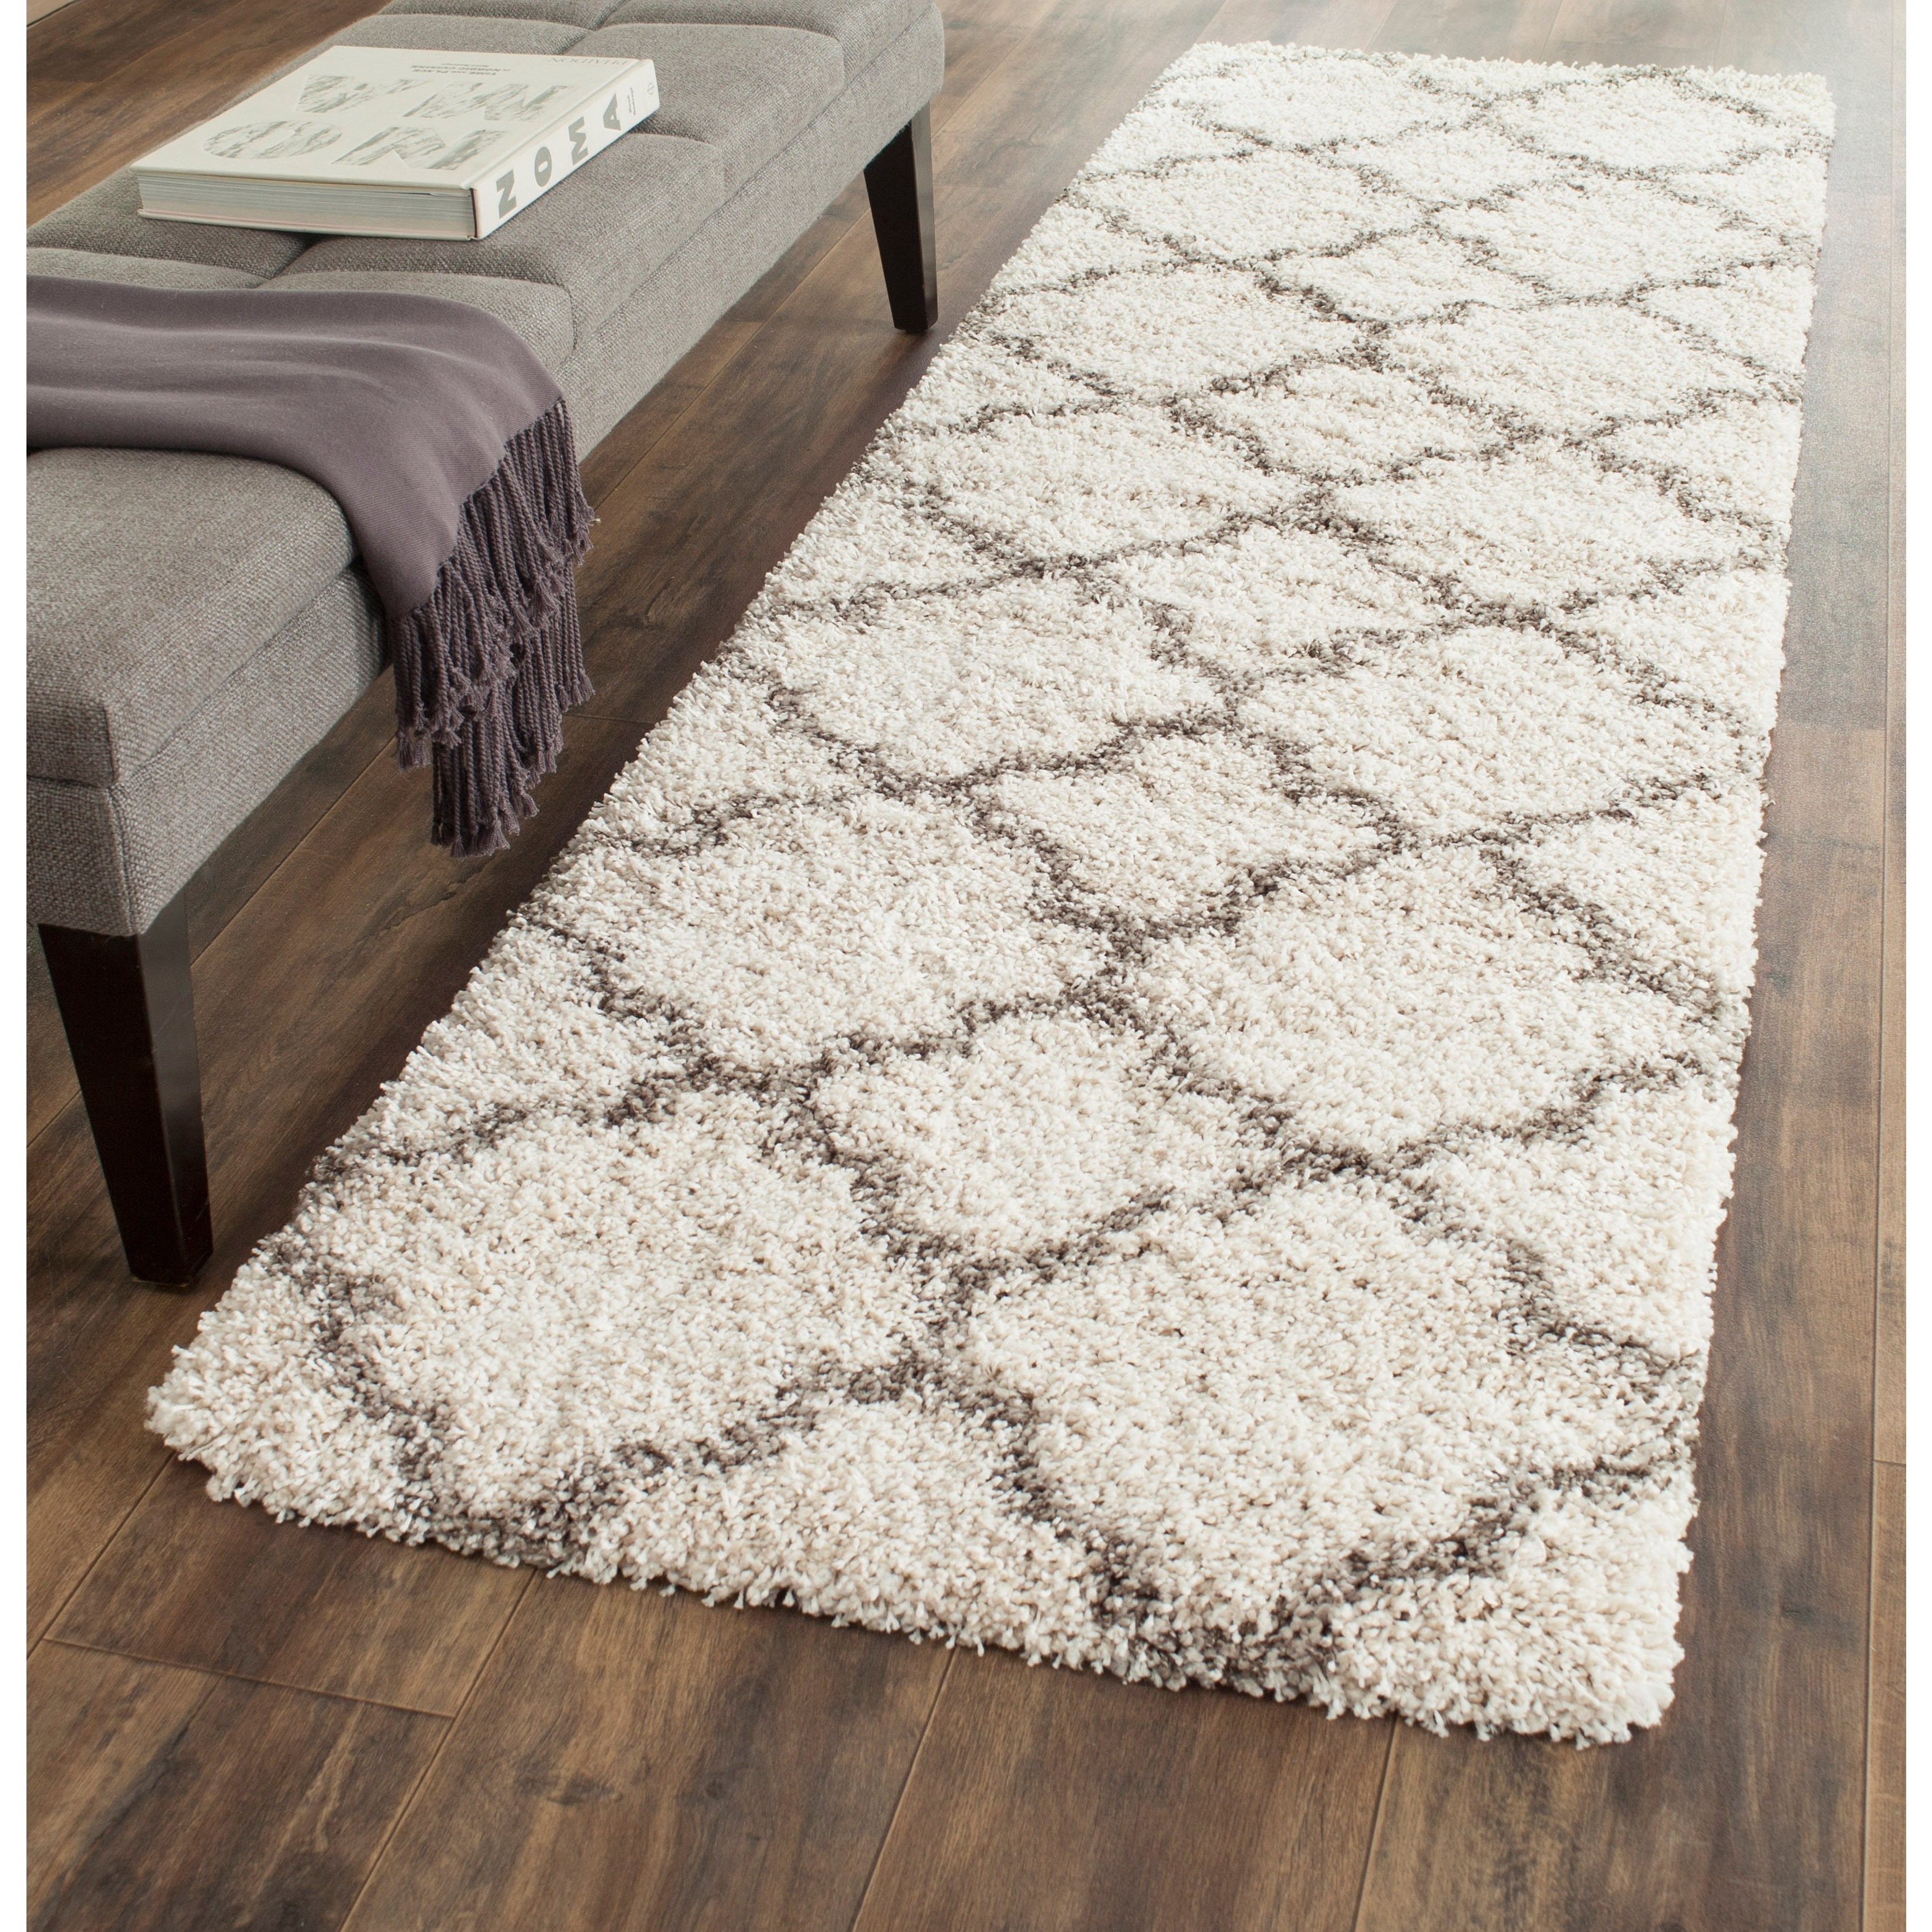 polyester canada shag silken product garden safavieh home area handmade paris to rug x ivory glam ships overstock